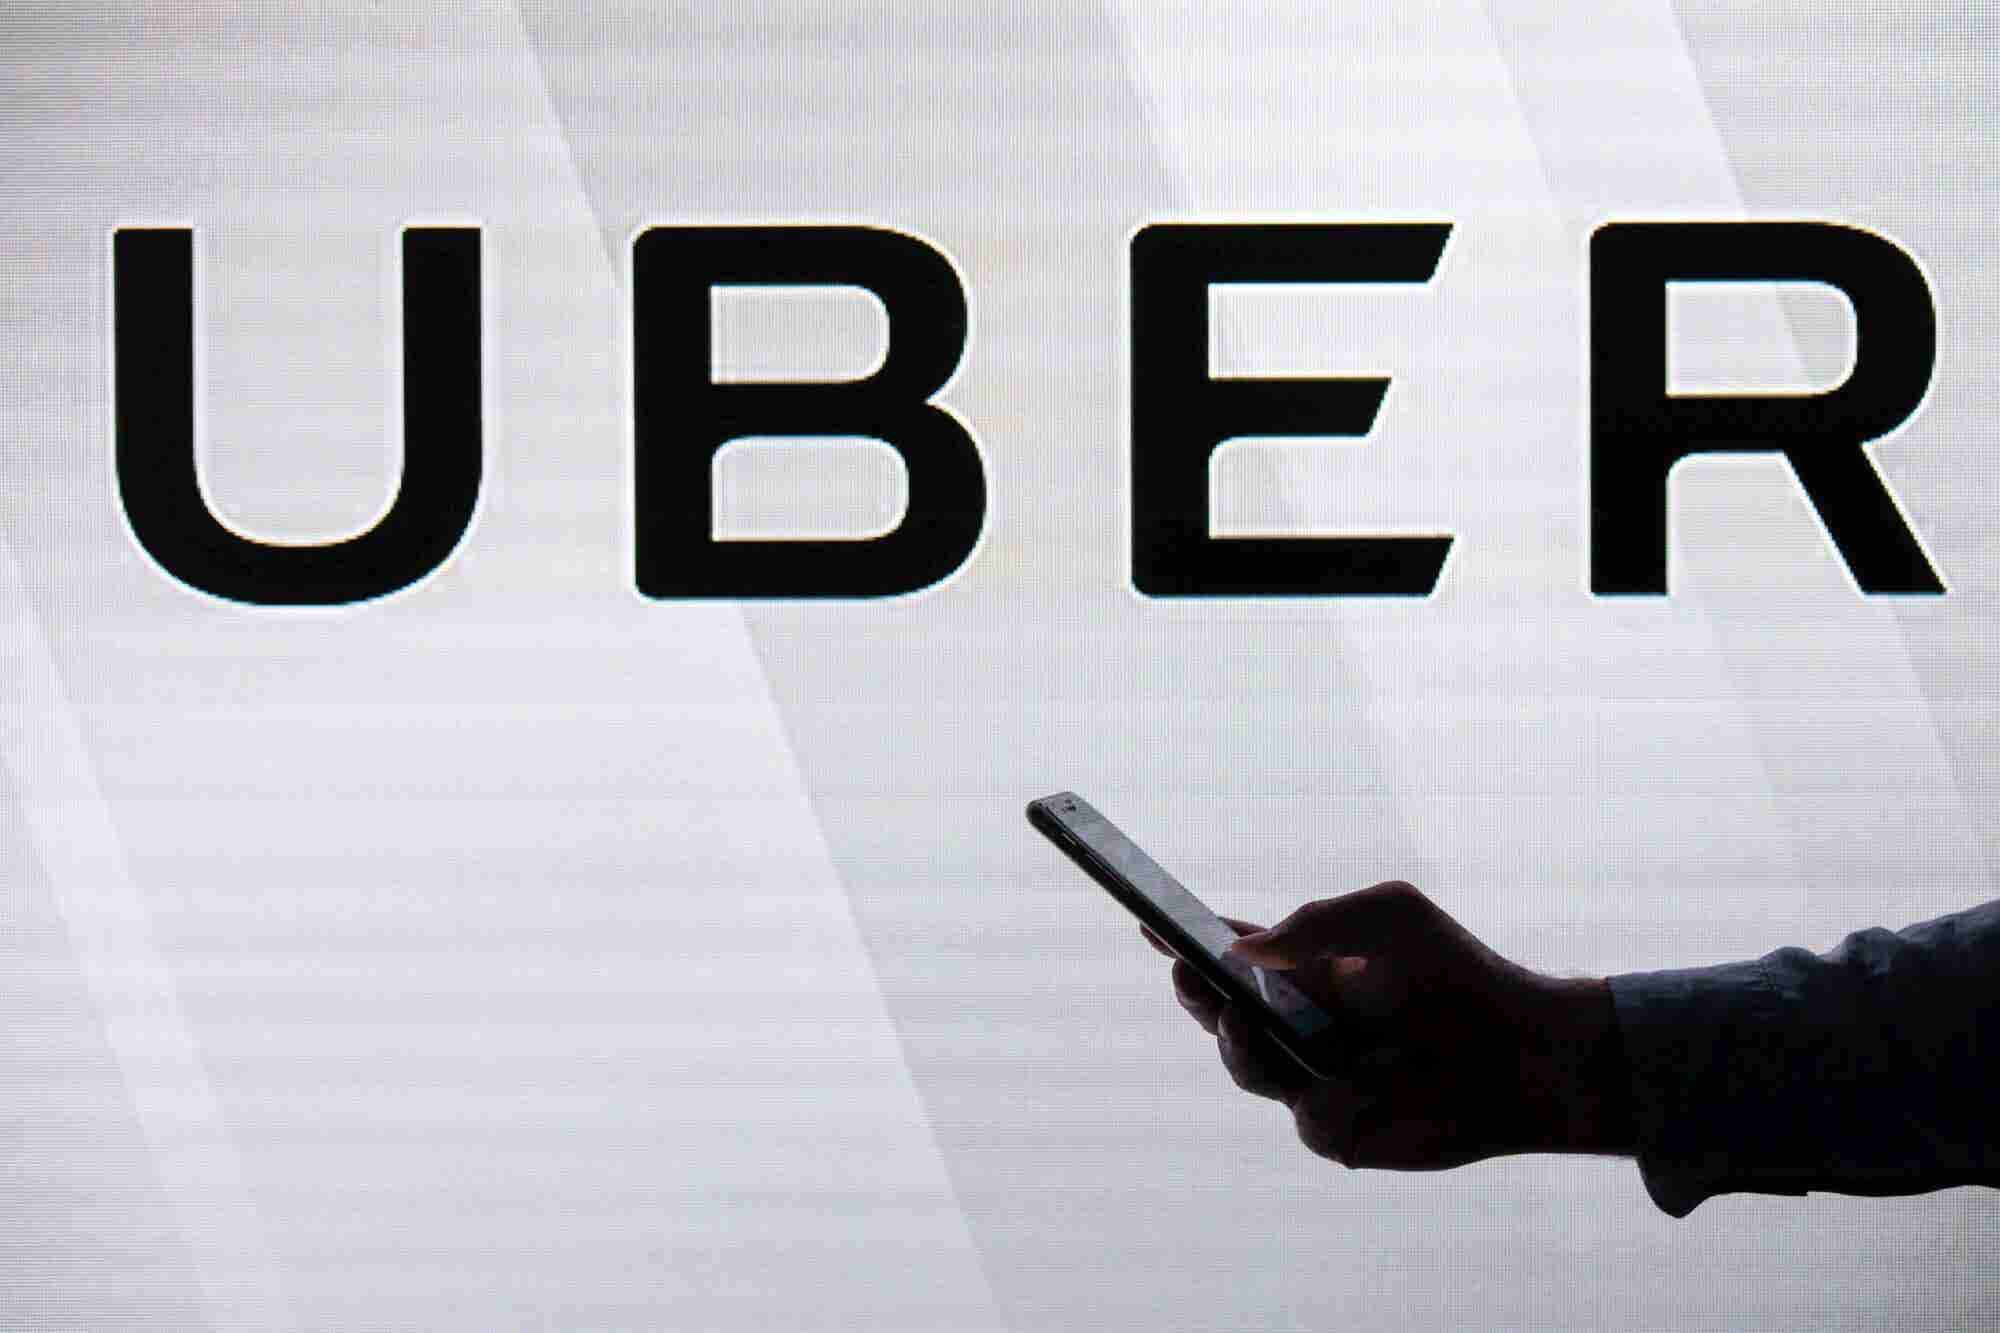 Uber's Earnings and an Unexpected Apple Pop Up Shop: 3 Things to Know Today